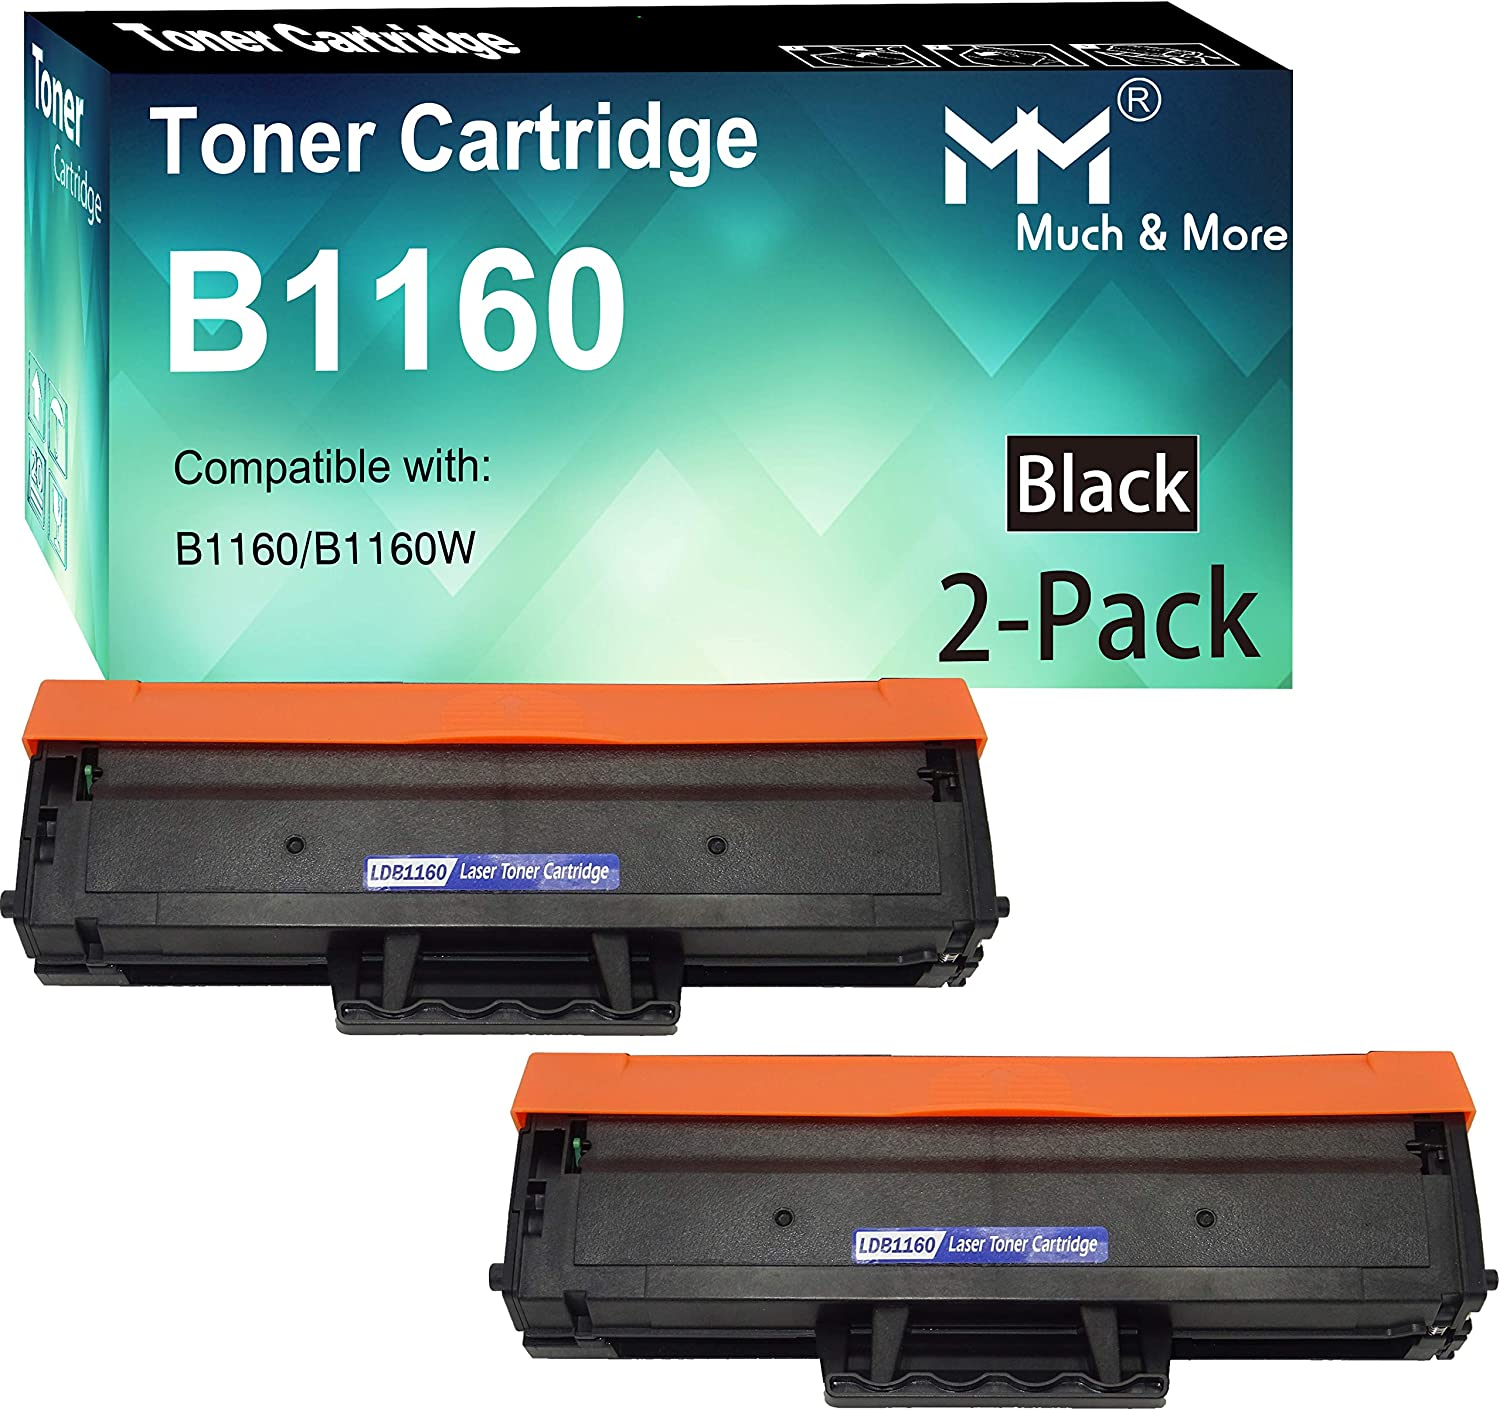 (2-Pack, Black) Compatible Dell YK1PM 1160 331-7335 HF44N HF442 Toner Cartridge Used with Dell B1160 B1160w B1163w B1165nfw Mono Laser Printer, Sold by MM MUCH & MORE